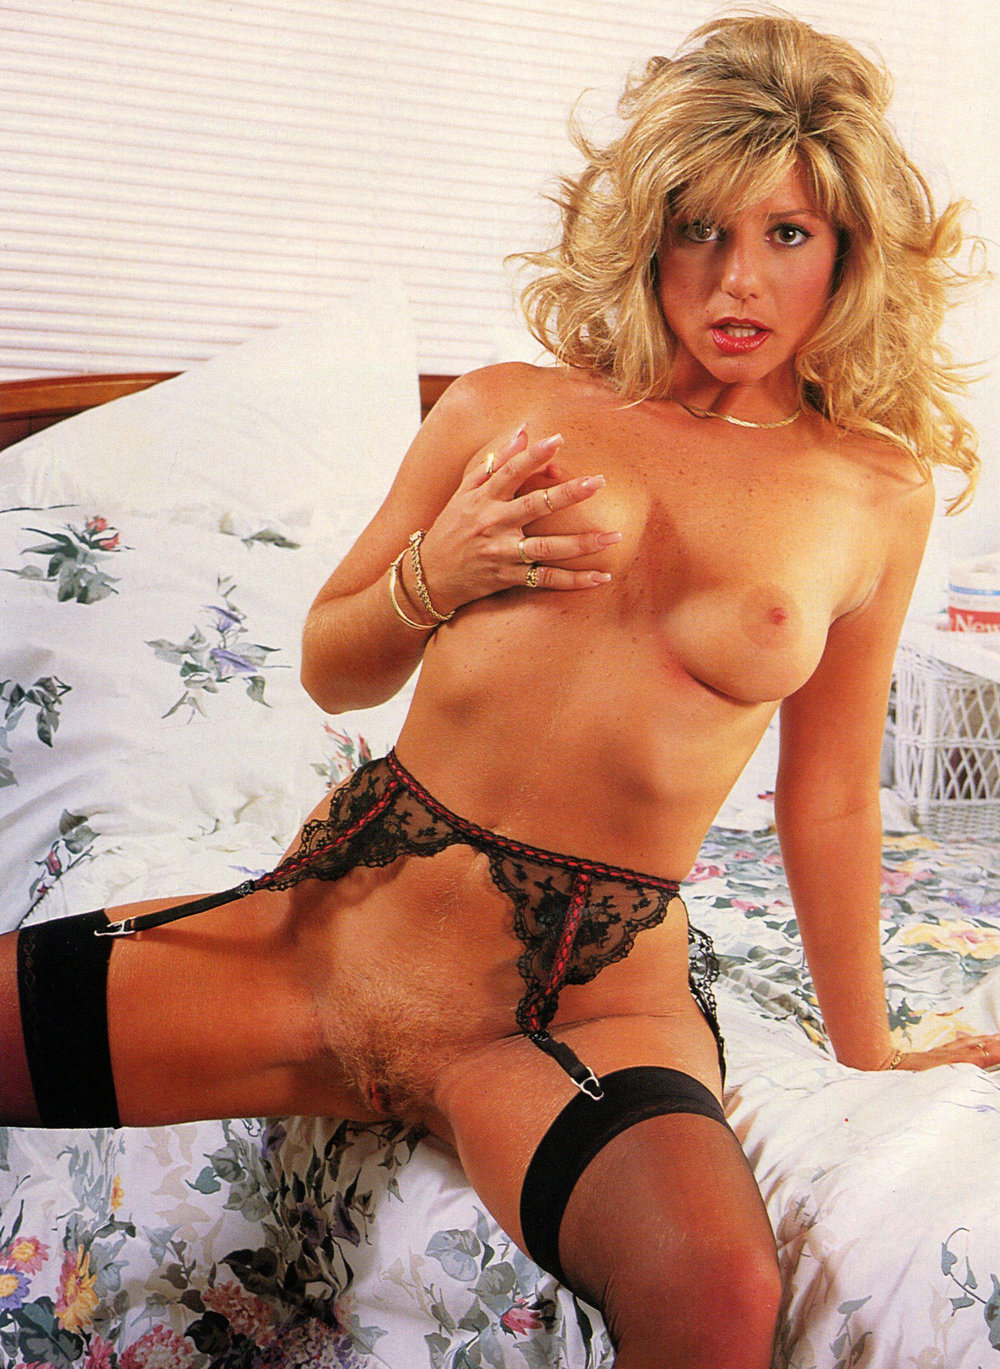 Angela summers vintage porn movies photos